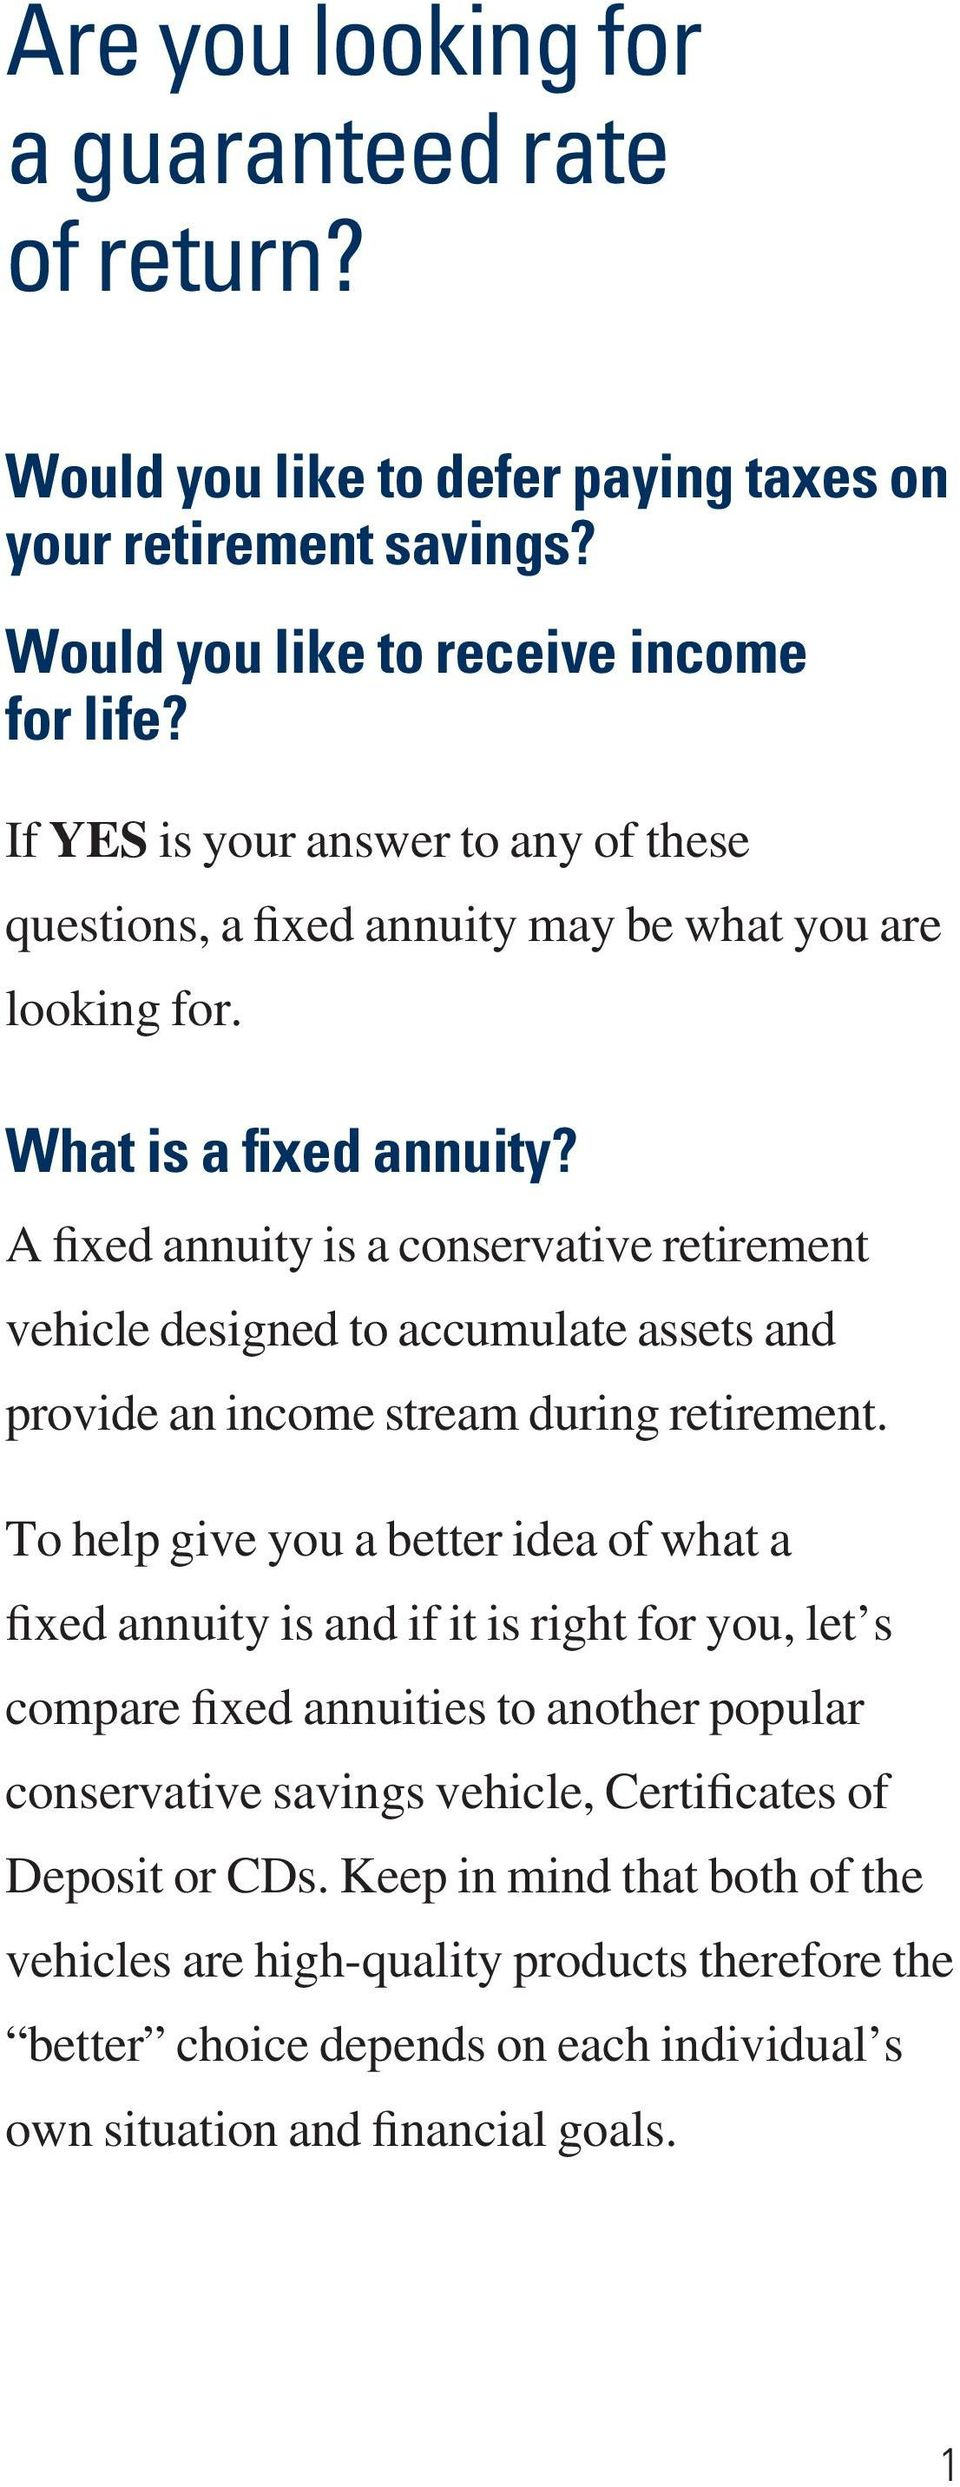 A fixed annuity is a conservative retirement vehicle designed to accumulate assets and provide an income stream during retirement.